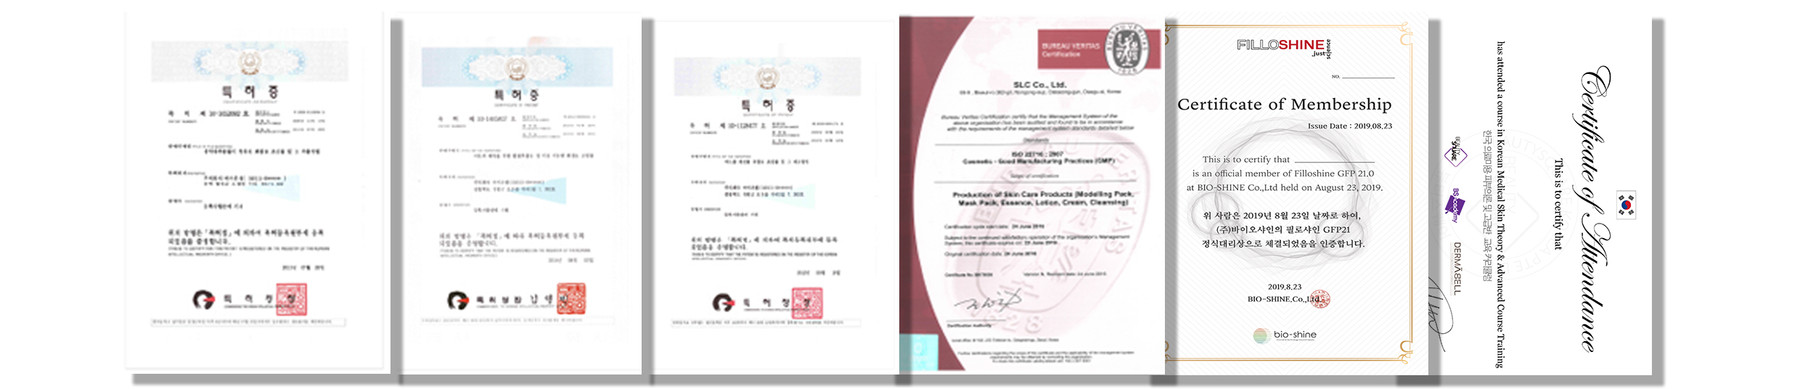 BeautySquare Certificates copy4.jpg